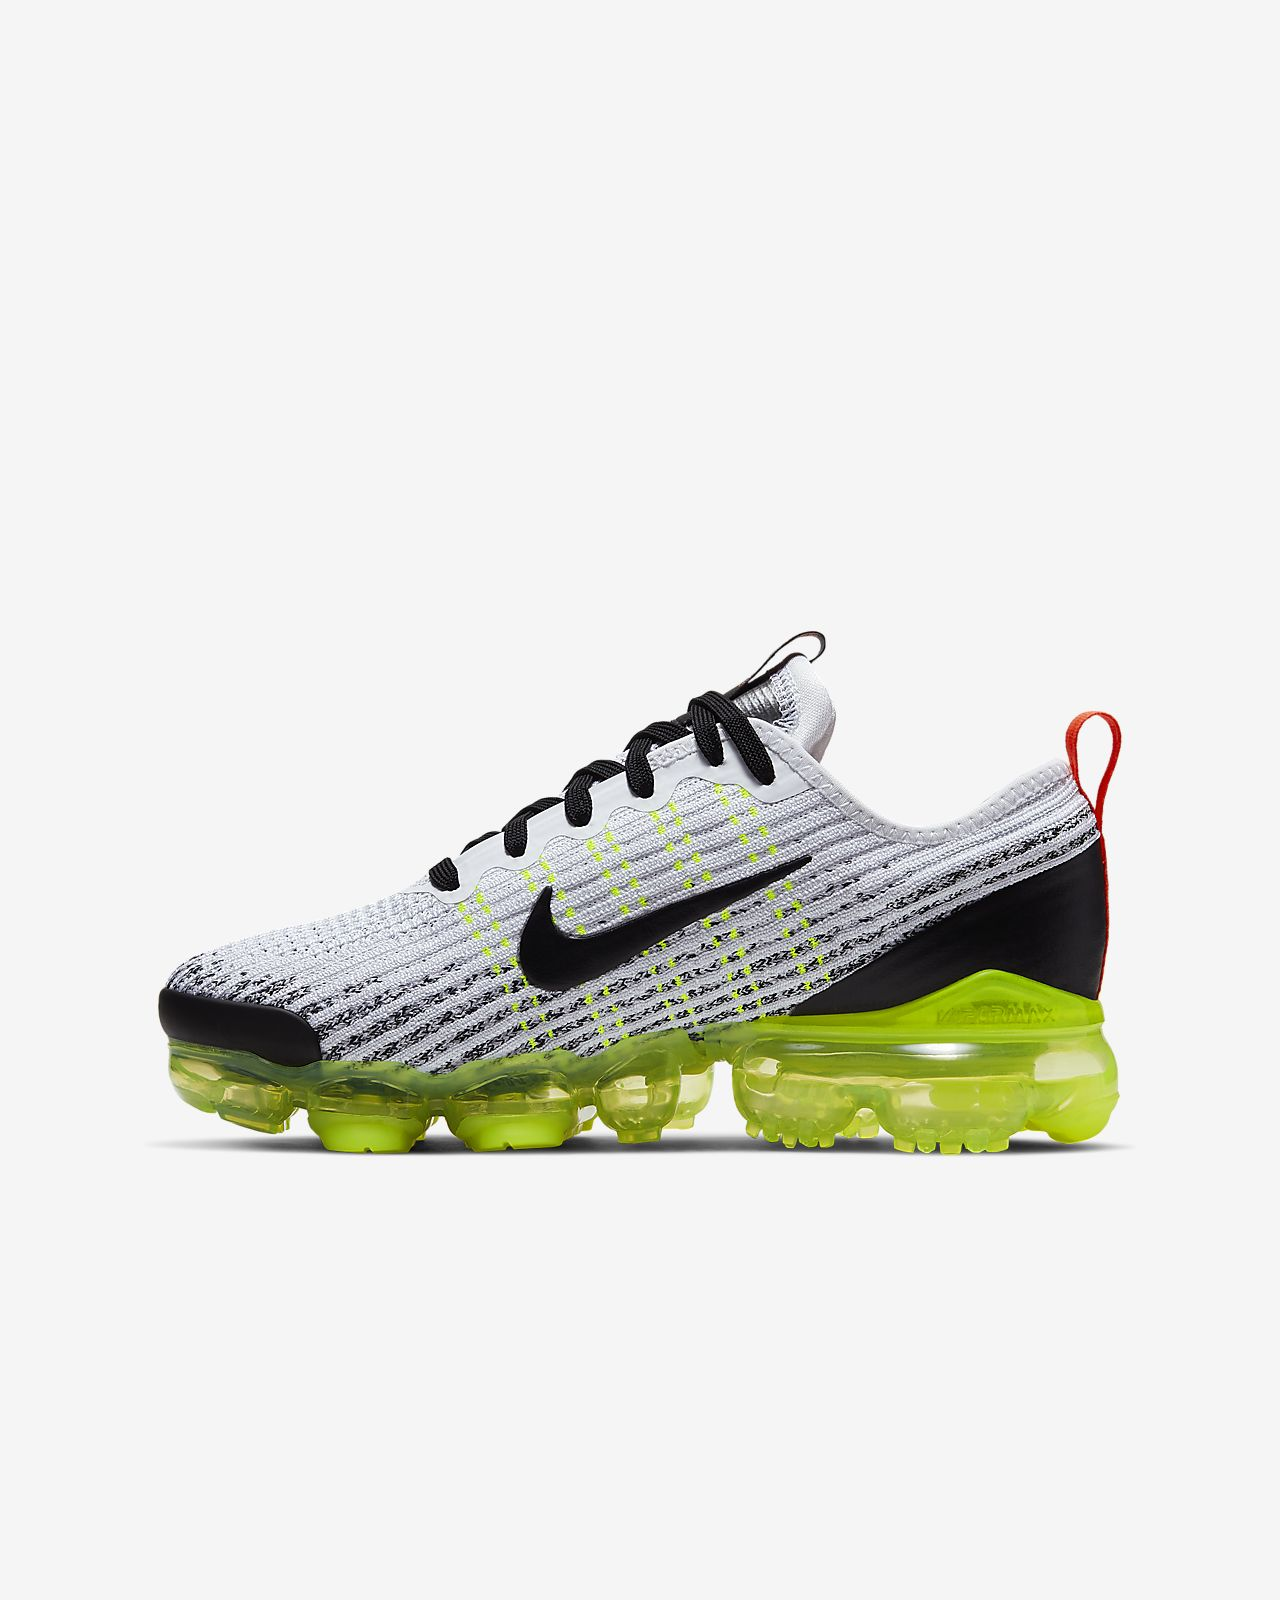 cheaper c8a5c 72e96 ... Nike Air VaporMax Flyknit 3 Older Kids  Shoe